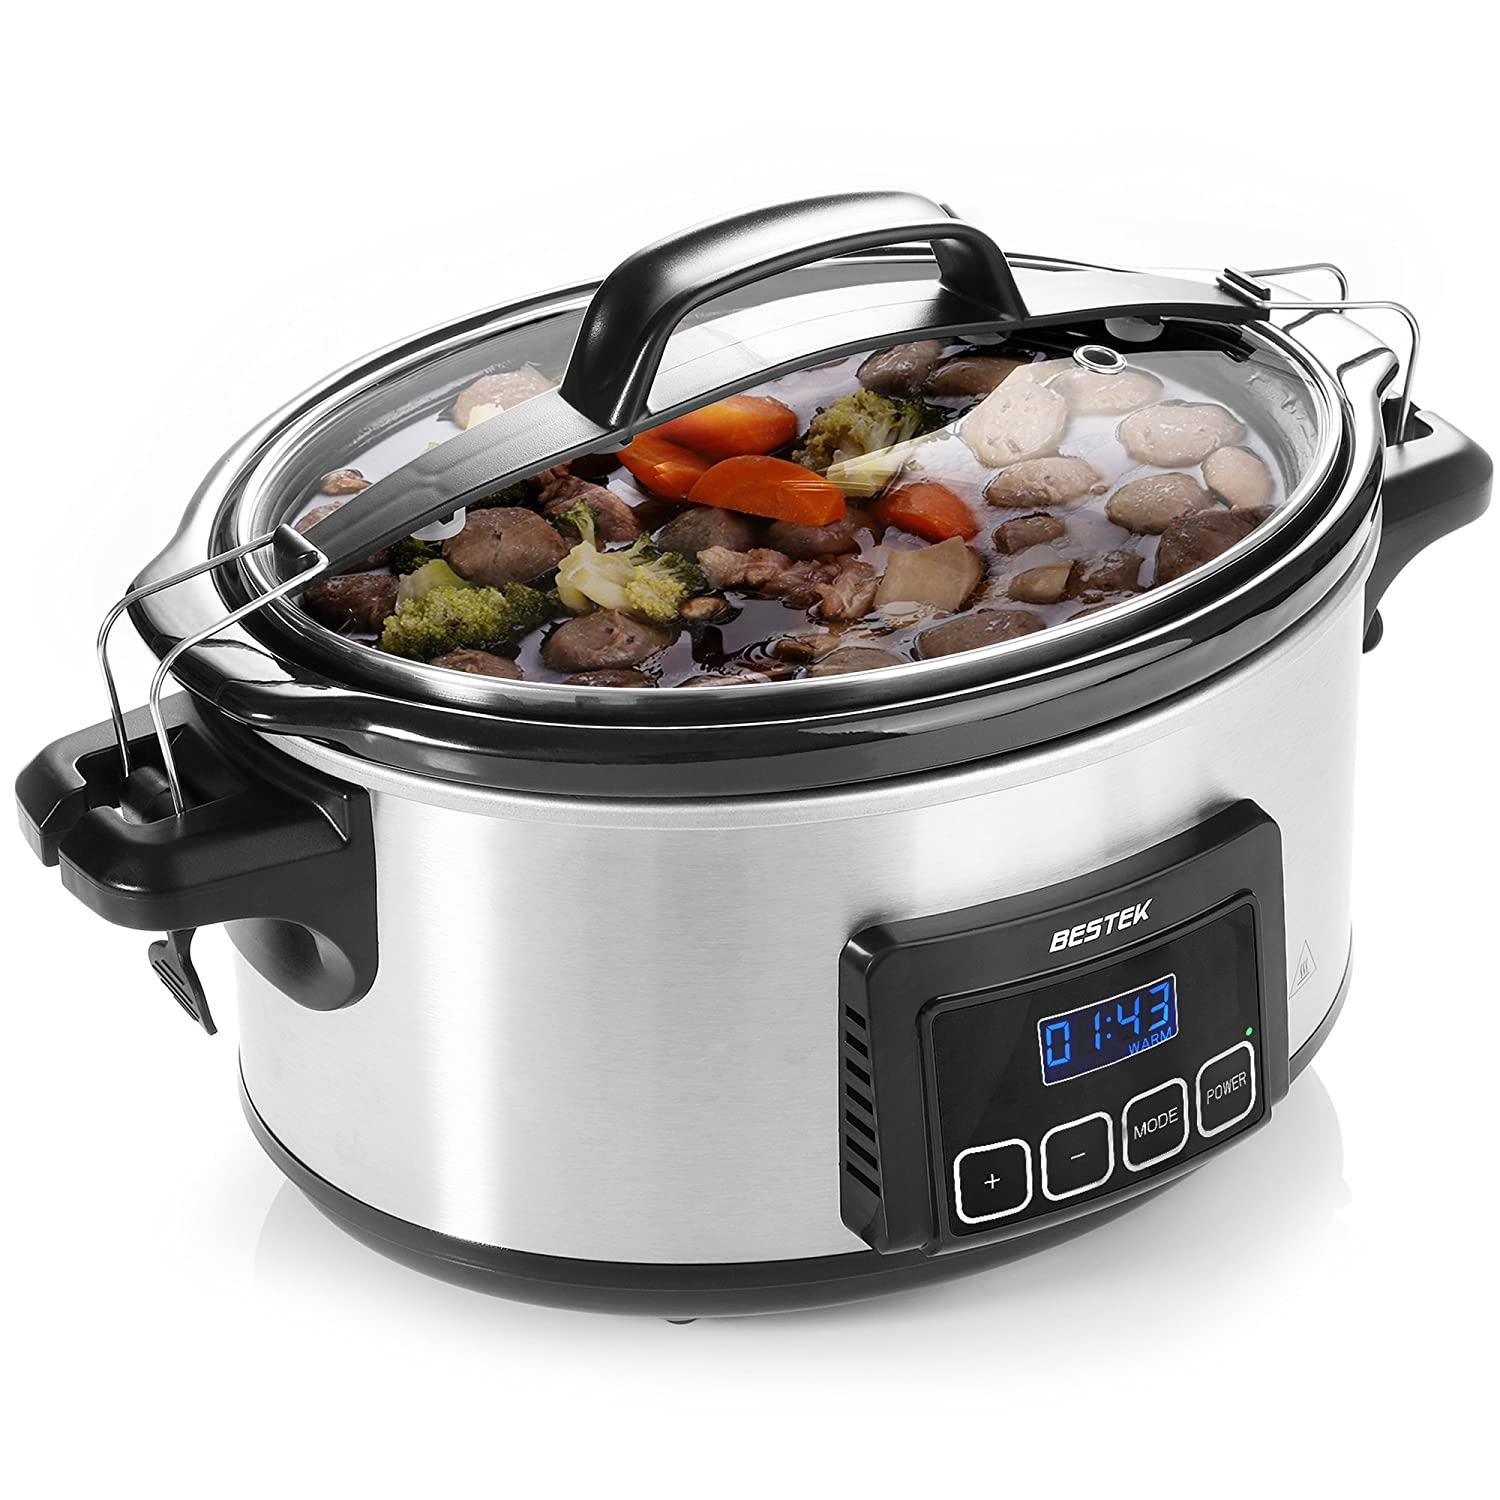 Slow Cooker, BESTEK 6 Quart Slow Cookers Programmable Digital Timer, Oval Pot with Latch Lock Lid and Stainless Steel Finish